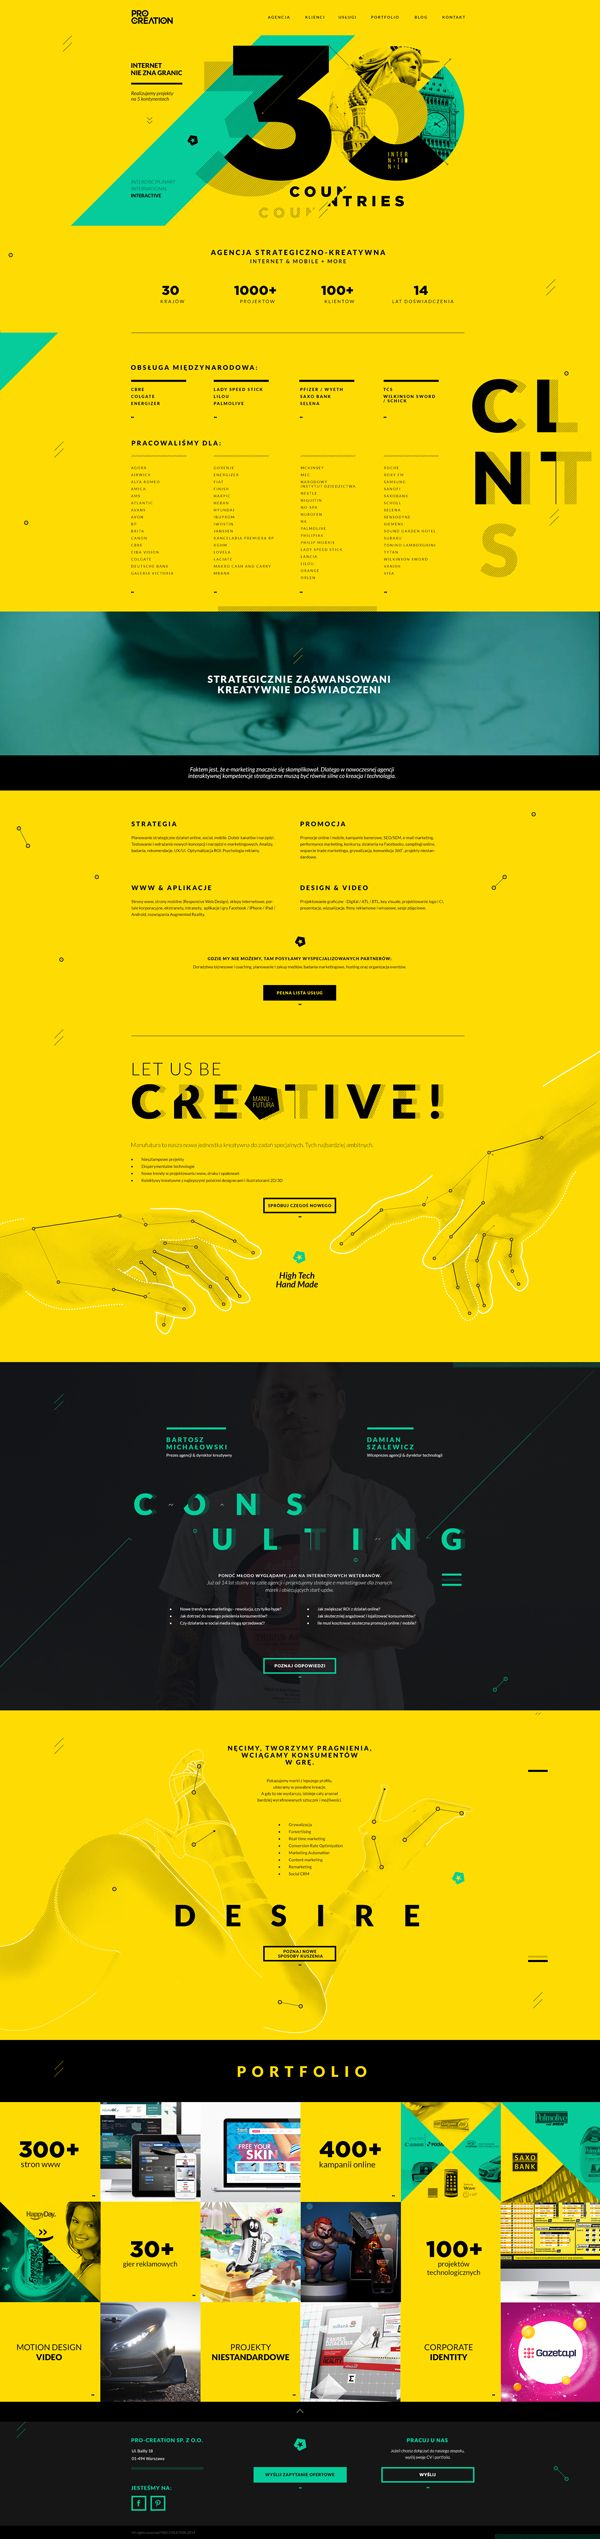 Pro Creation. Never seen any web design like this. #webdesign #design // Hi Friends, look what I just found on #web #design! Make sure to follow us @moirestudiosjkt to see more pins like this | Moire Studios is a thriving website and graphic design studio based in Jakarta, Indonesia.